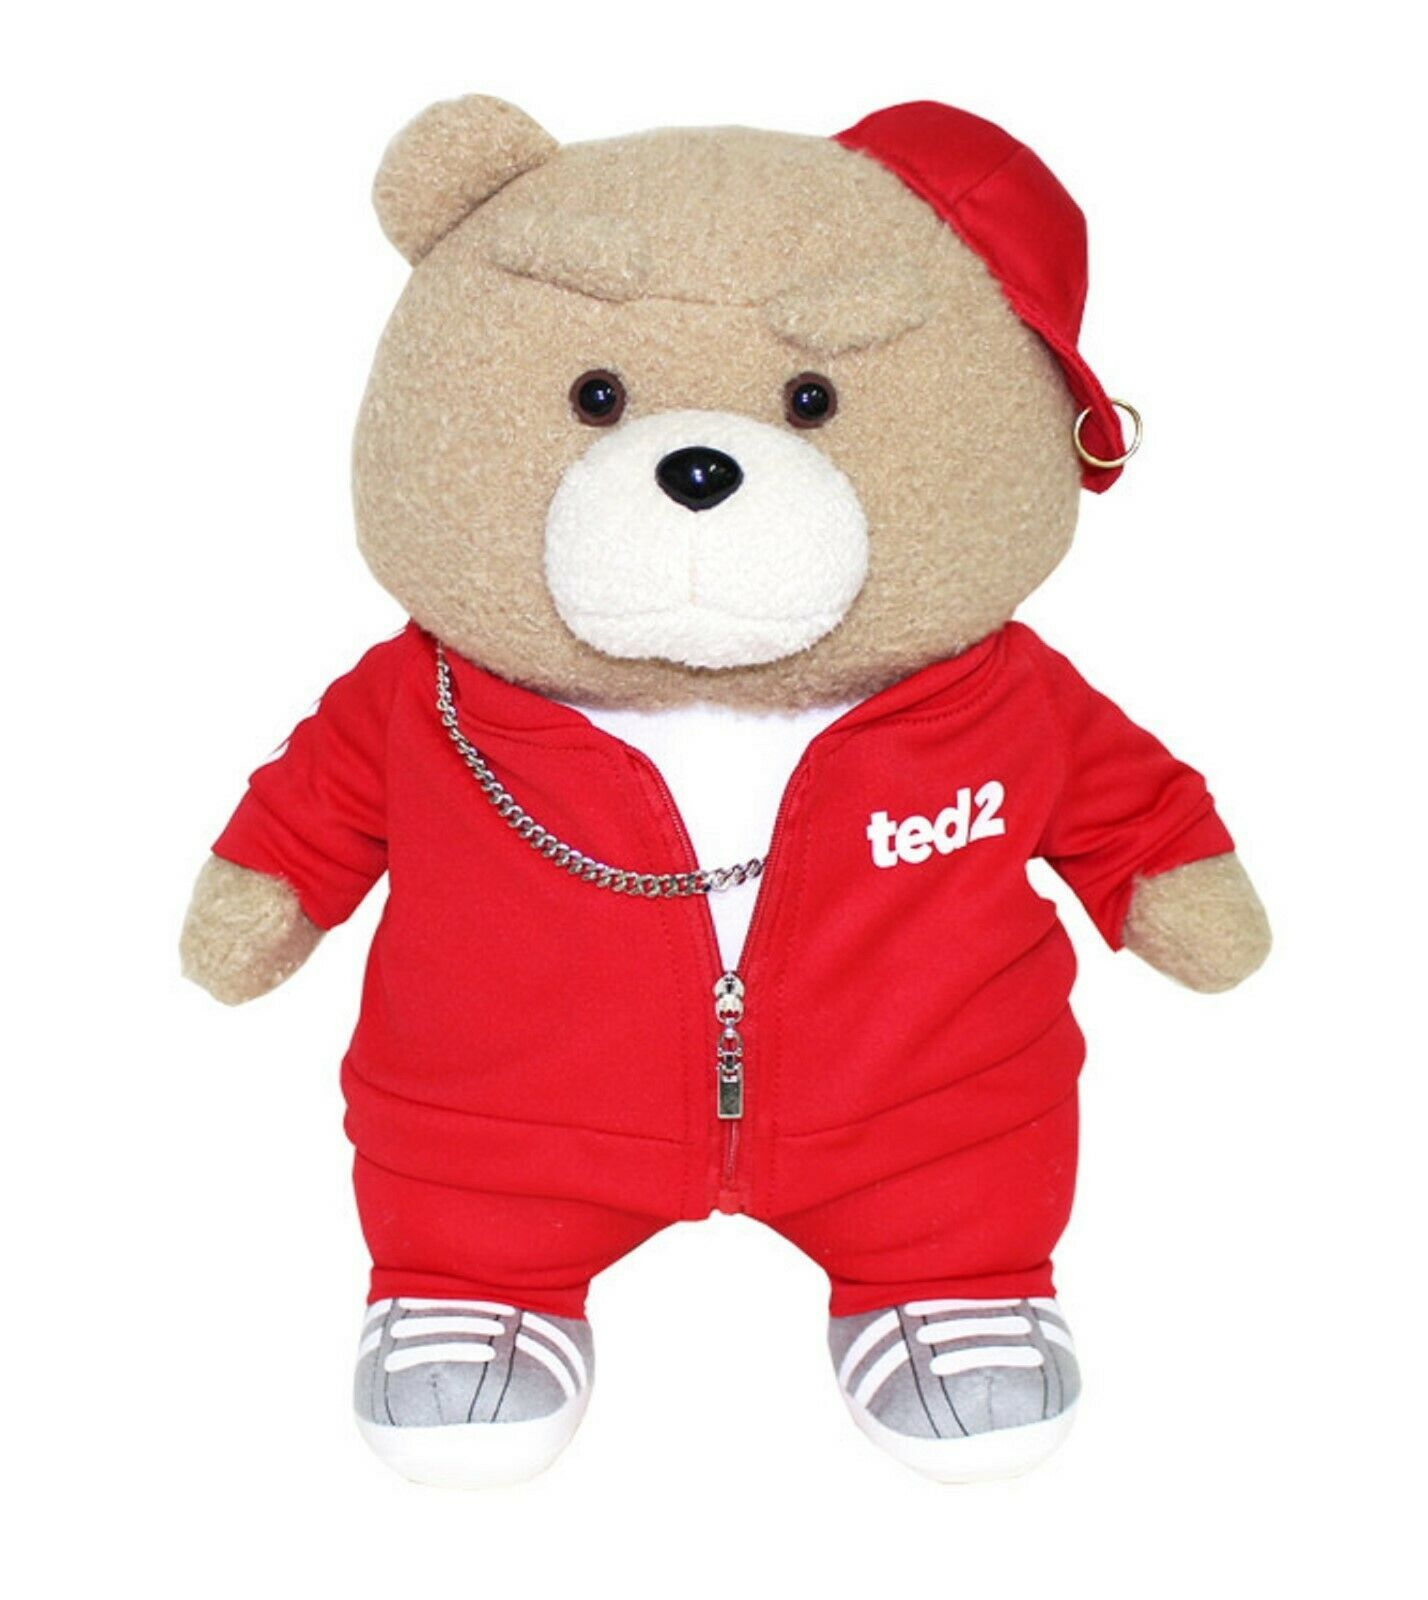 Izen Creation Hippop Stuffed Animal Teddy Bear Plush Toy 35cm 13.7 inches (Red)